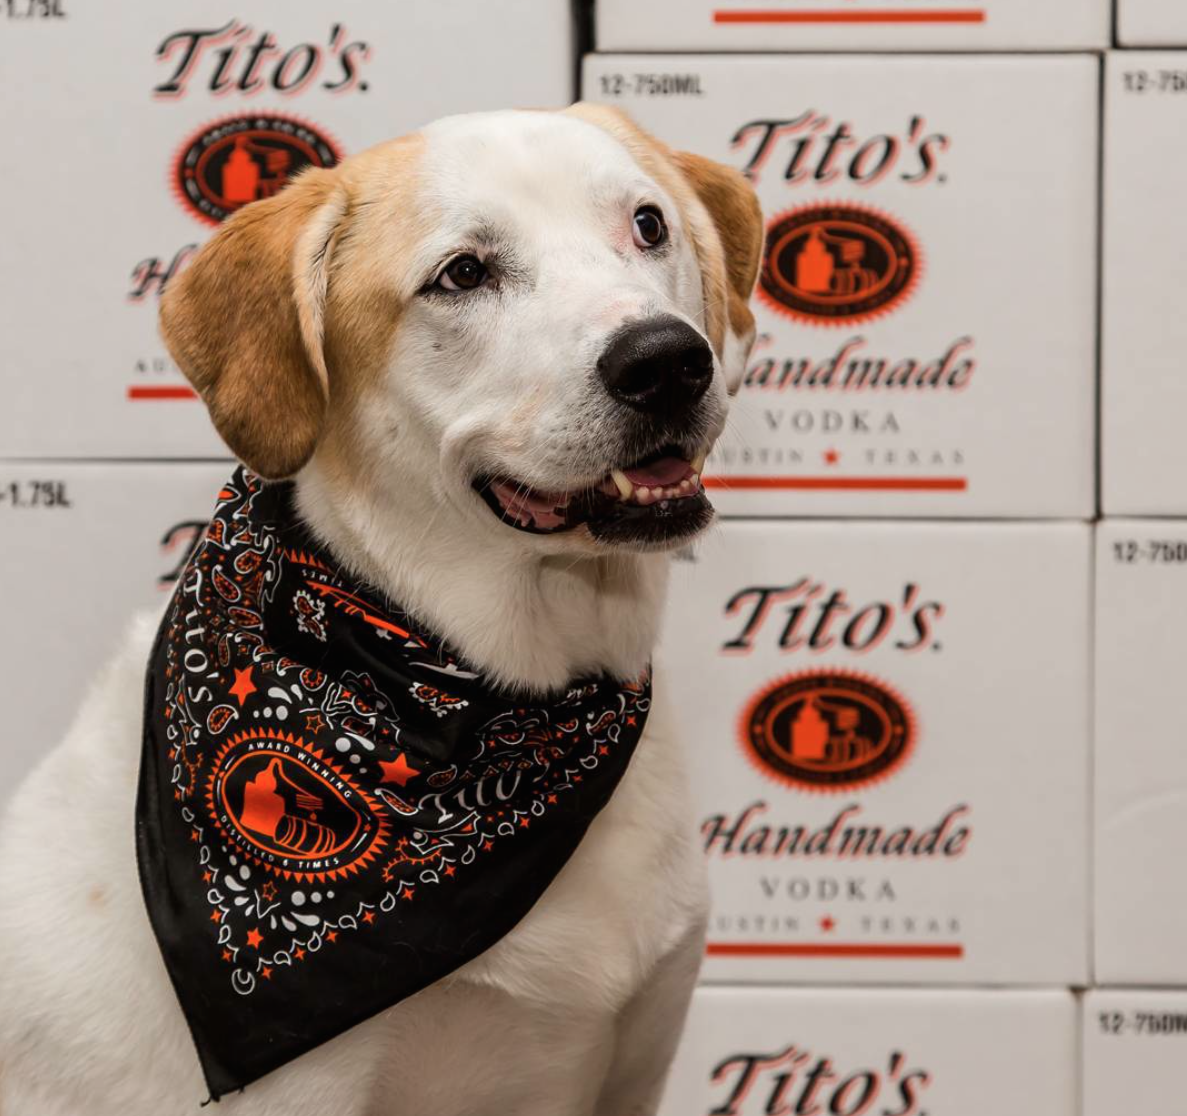 Today is the day! Come celebrate #NationalDogDay w/ @TitosVodka benefiting @Emancipet. Don't miss the furry fun! http://t.co/BzboEjlFrr